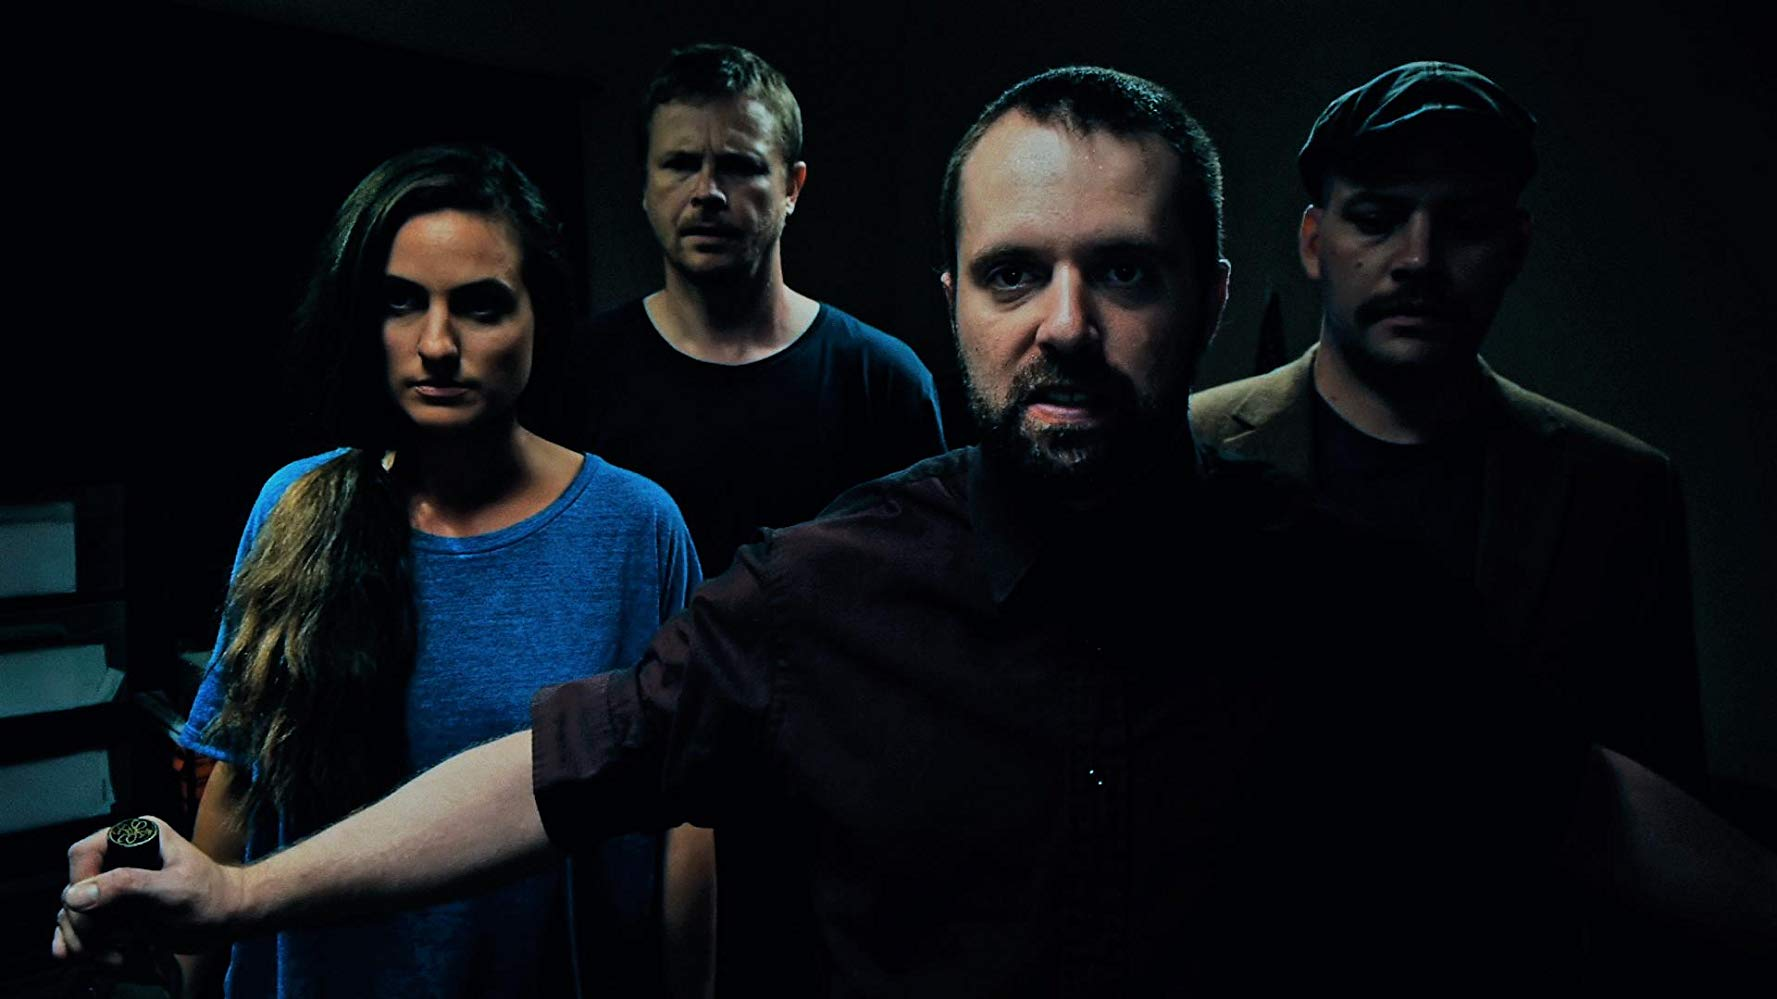 The inmates - (l to r) Brittany Joan White, James Howarth, Shaun Michael Chilton and Brandon Fisher (also the film's director/writer) in Hack House (2017)